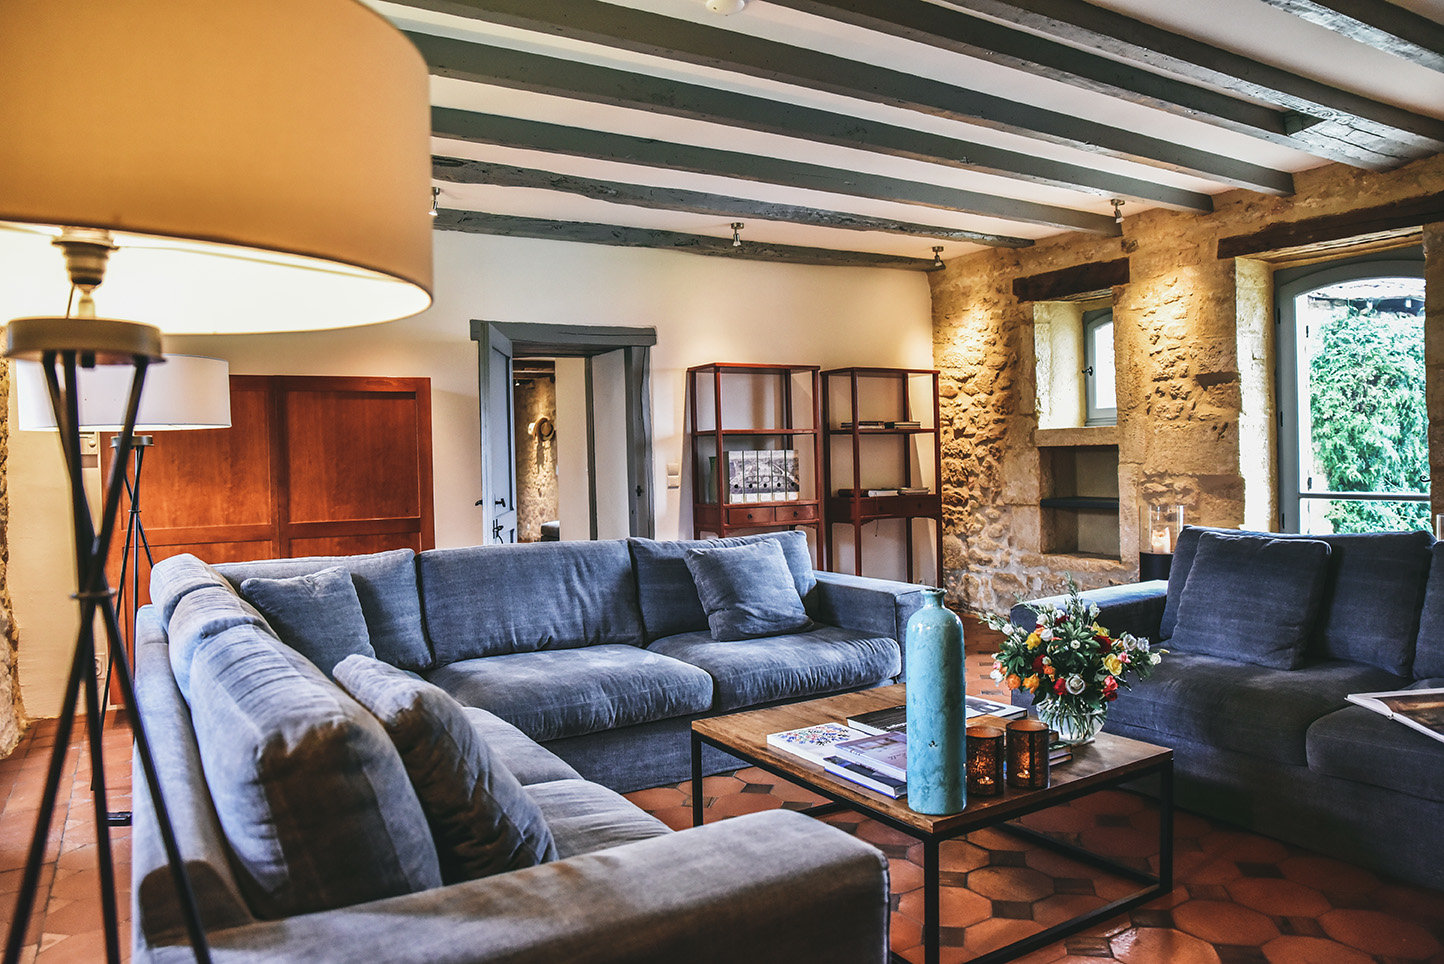 The sitting room of Le Mas, a beautiful holiday rental in the Dordogne, with stone walls, a terracotta tiled floor, blue sofas and a DePadova Shigeto cherrywood cupboard